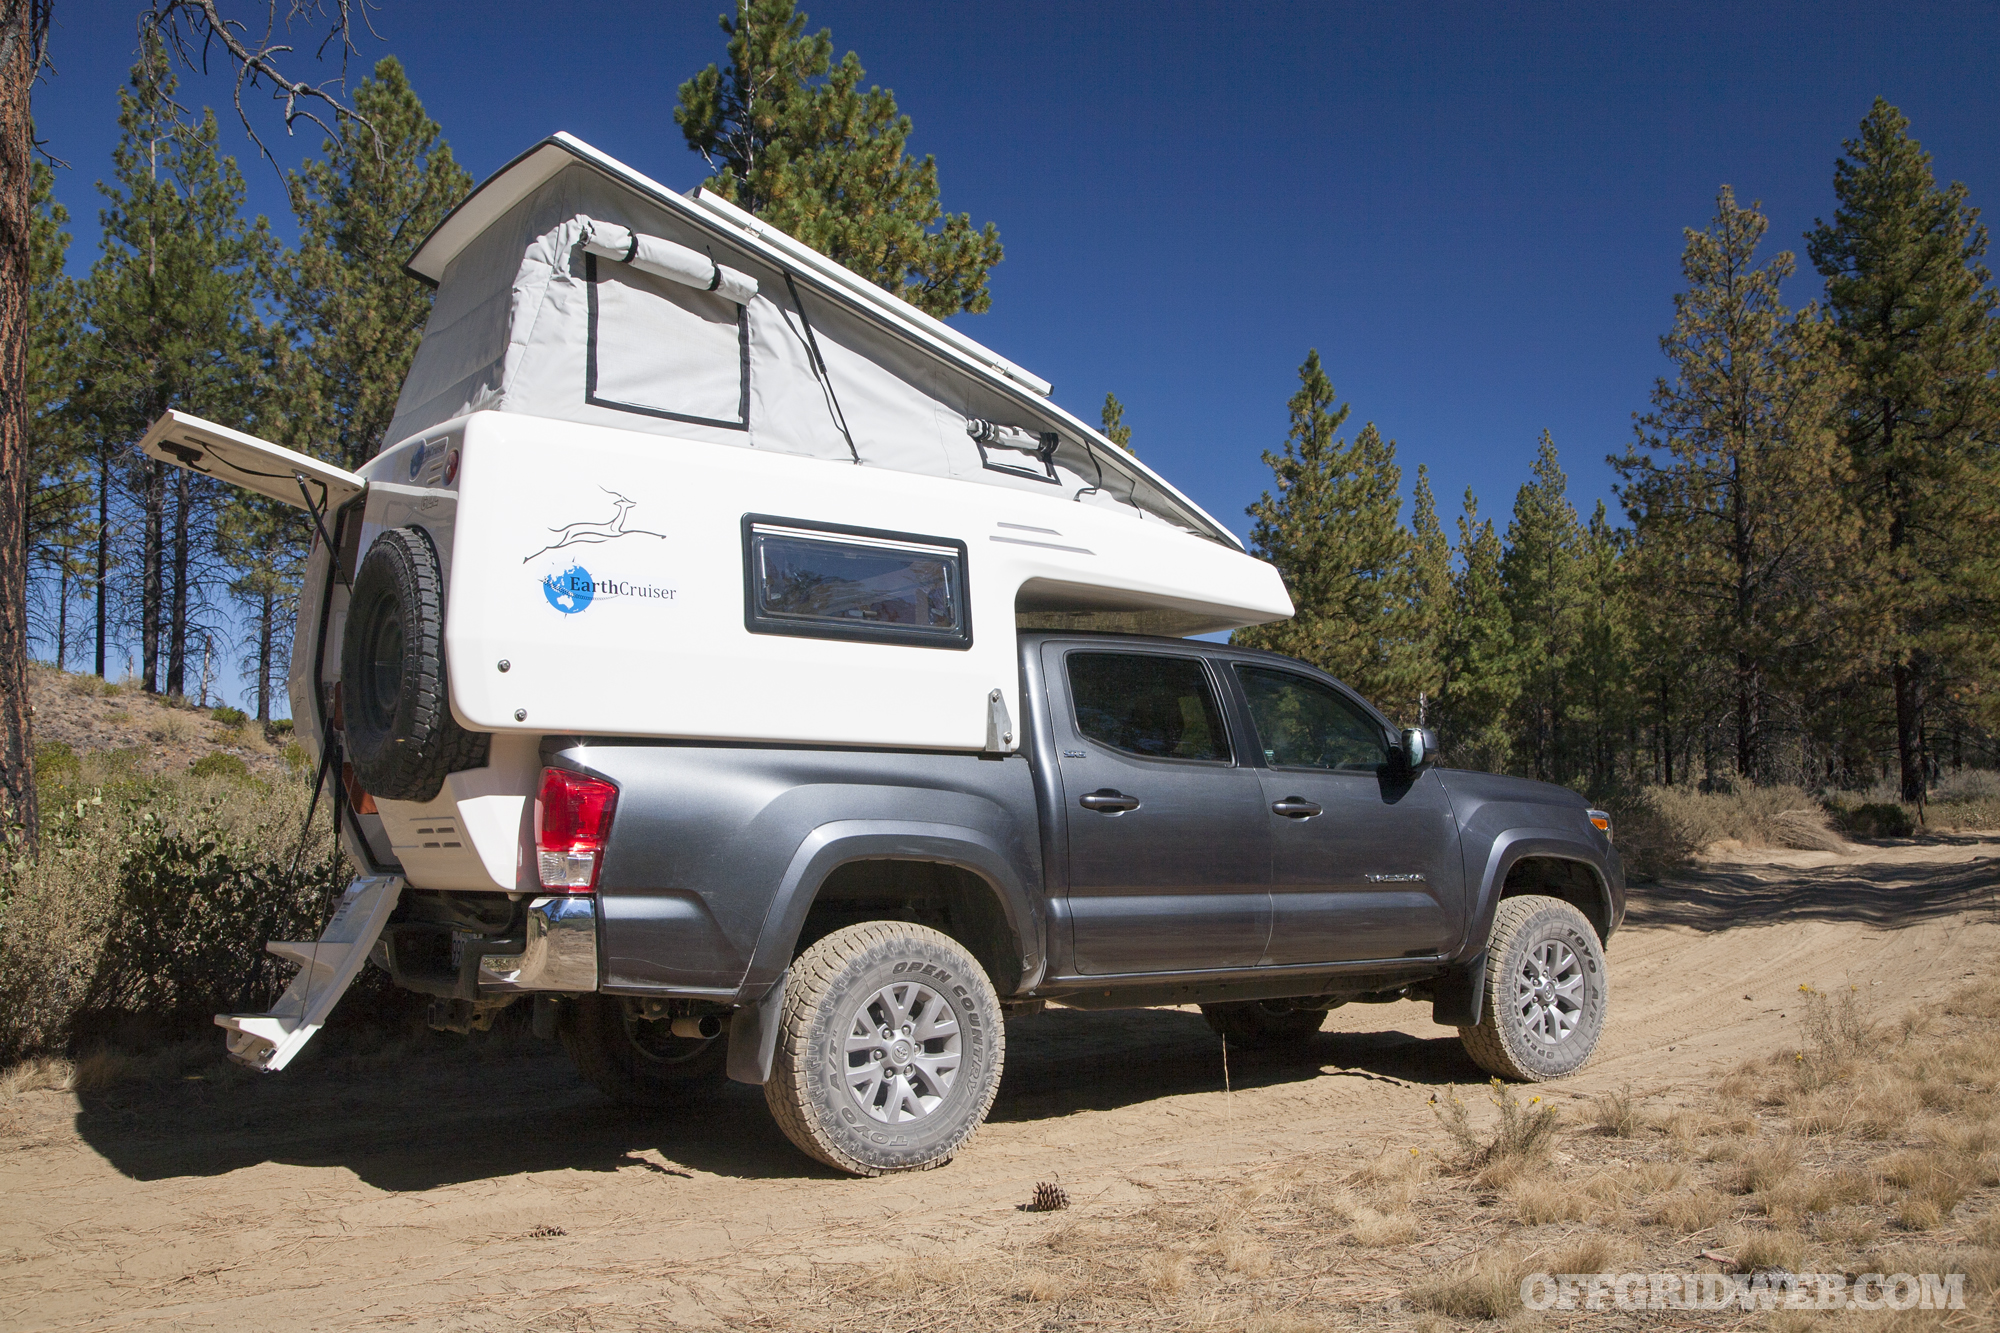 Feature Earthcruiser Gzl Truck Camper Recoil Offgrid Ford Raptor With S Rv Vehicle 20